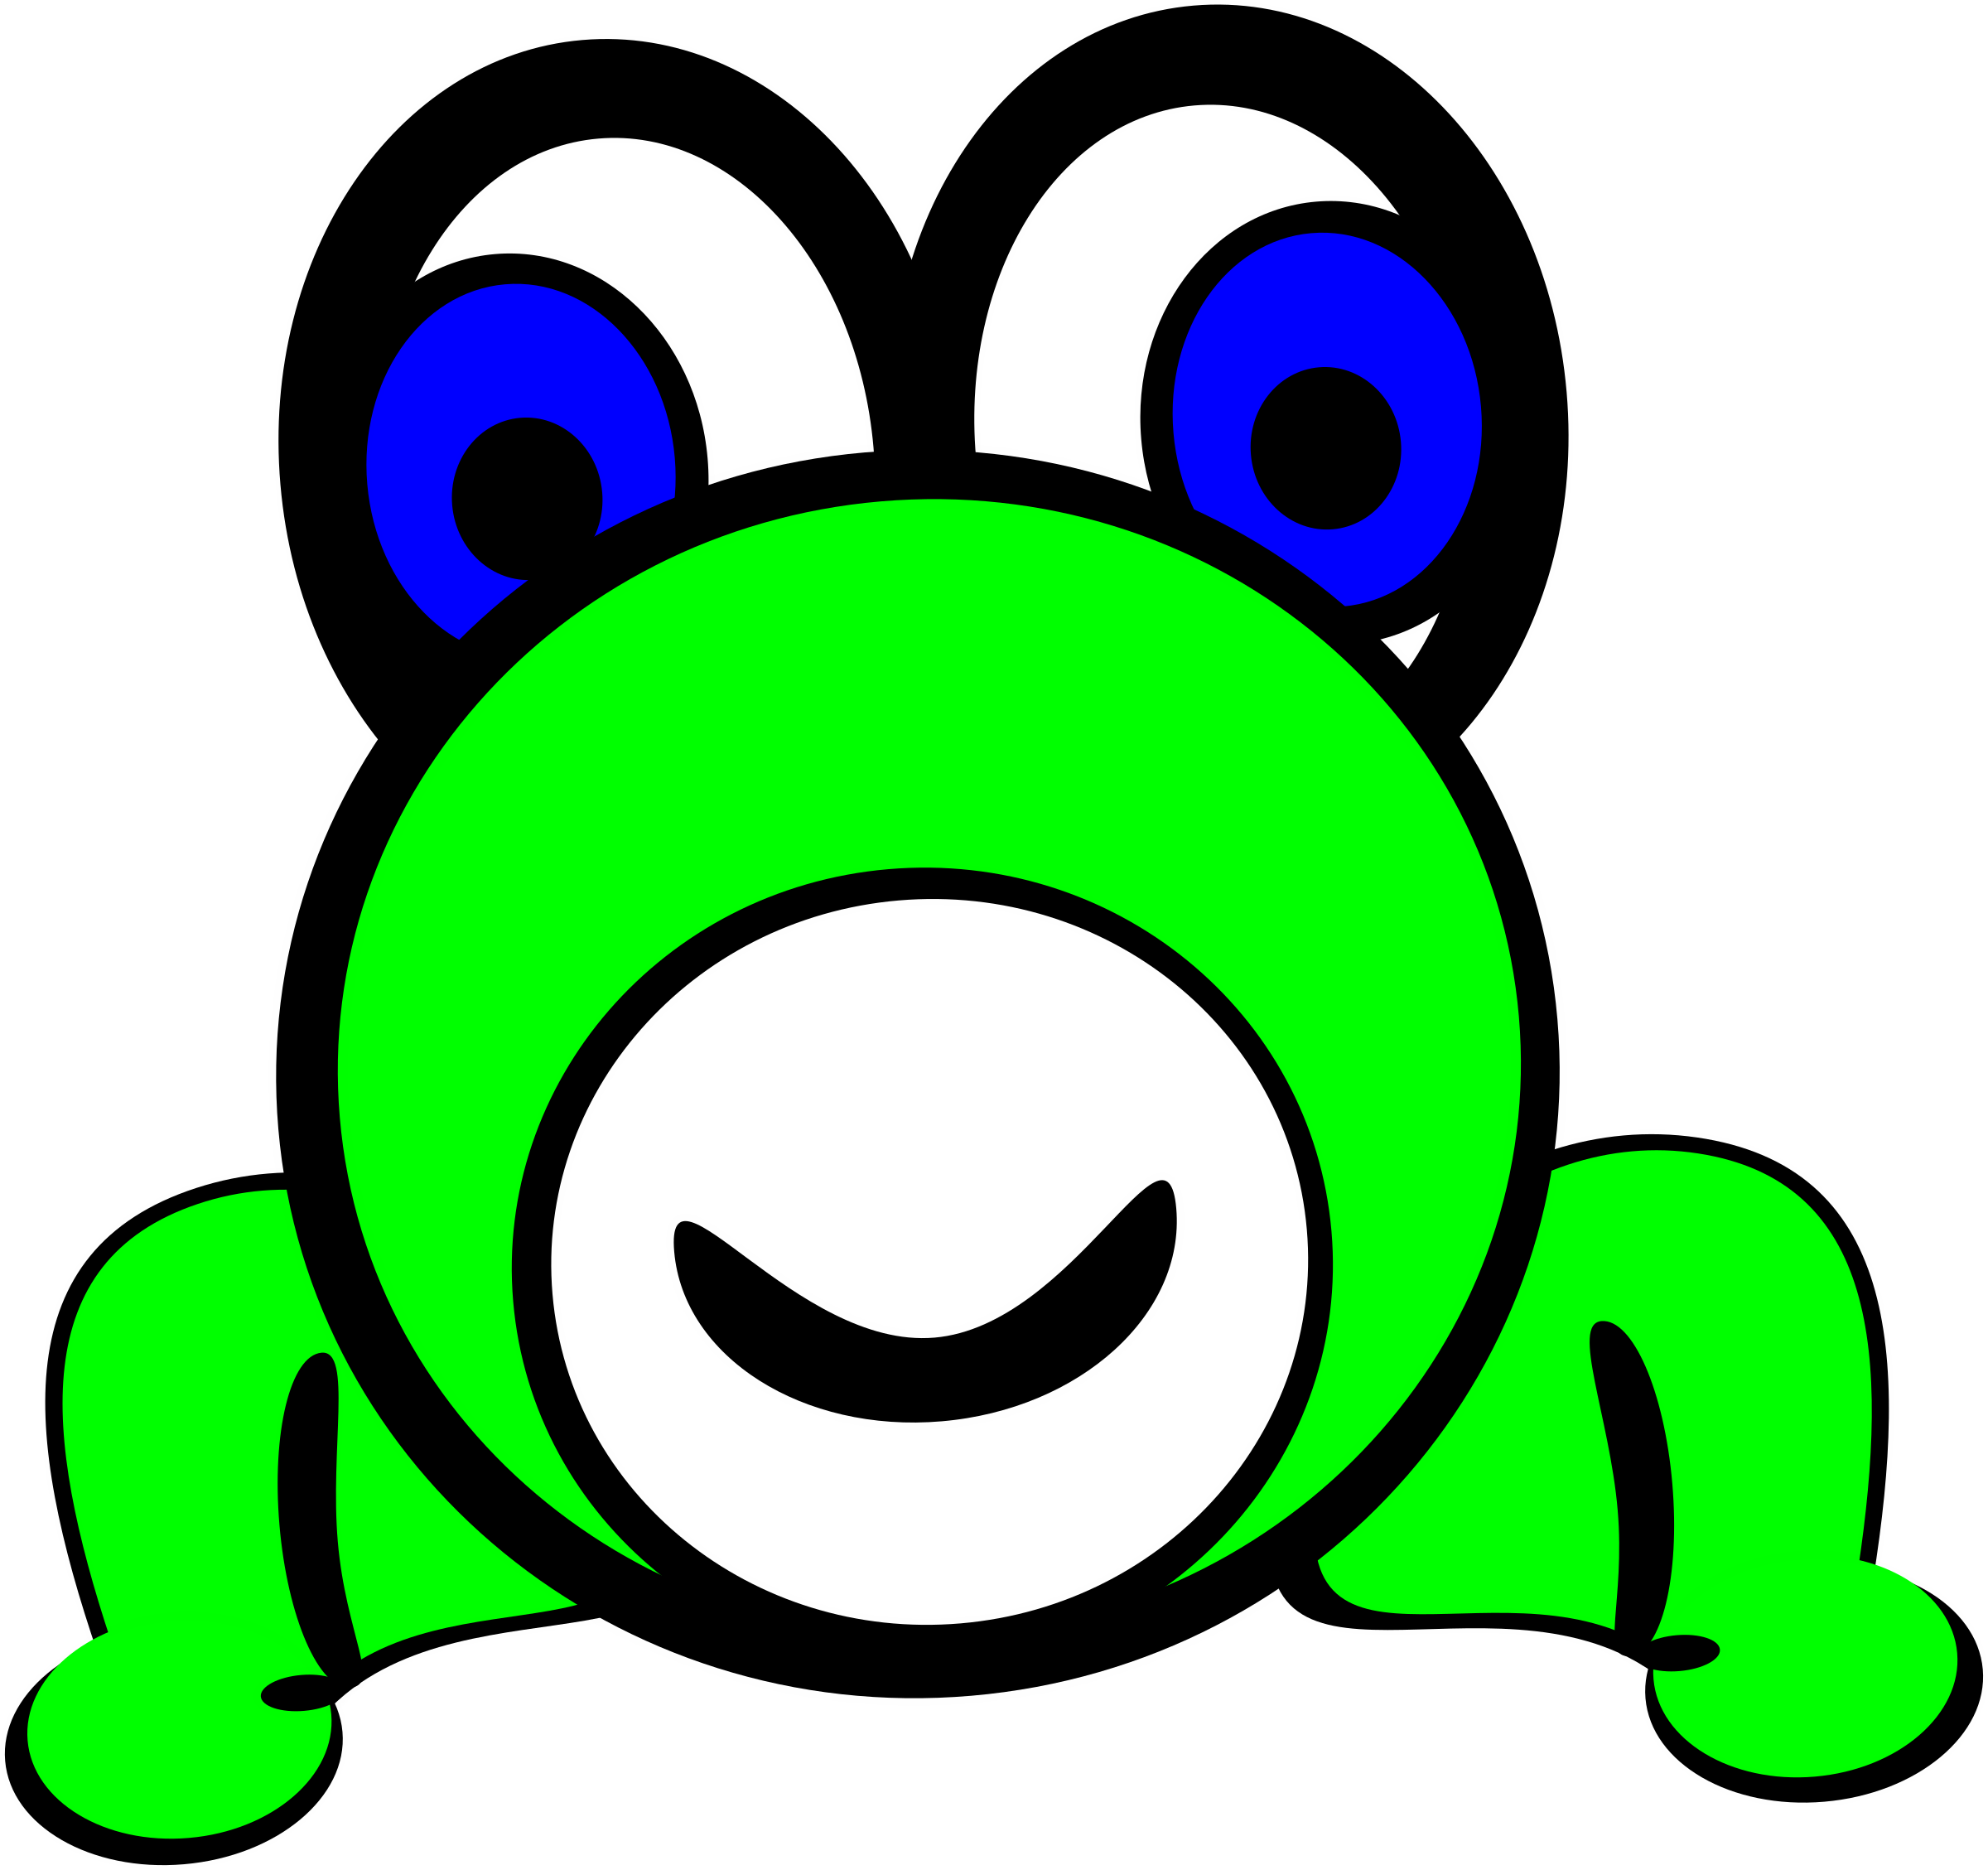 Frog by peterbrough on. Frogs clipart head